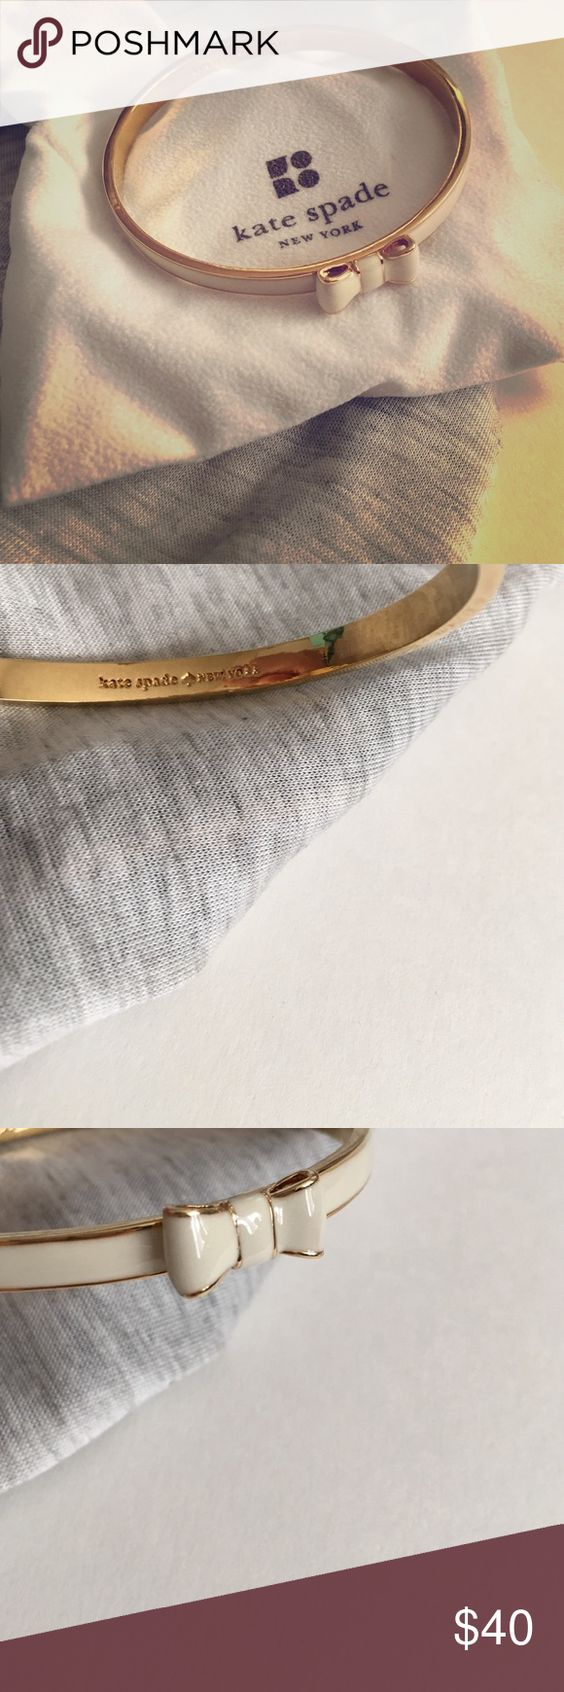 Kate Spade || Bow bangle New, cute girly bangle.  Wear it alone or create your own style combining it with other arm candy.      Perfect for gift ideas  ❌NO trades ❌NO PayPal  Bundle to get discount Please use OFFER option kate spade Jewelry Bracelets